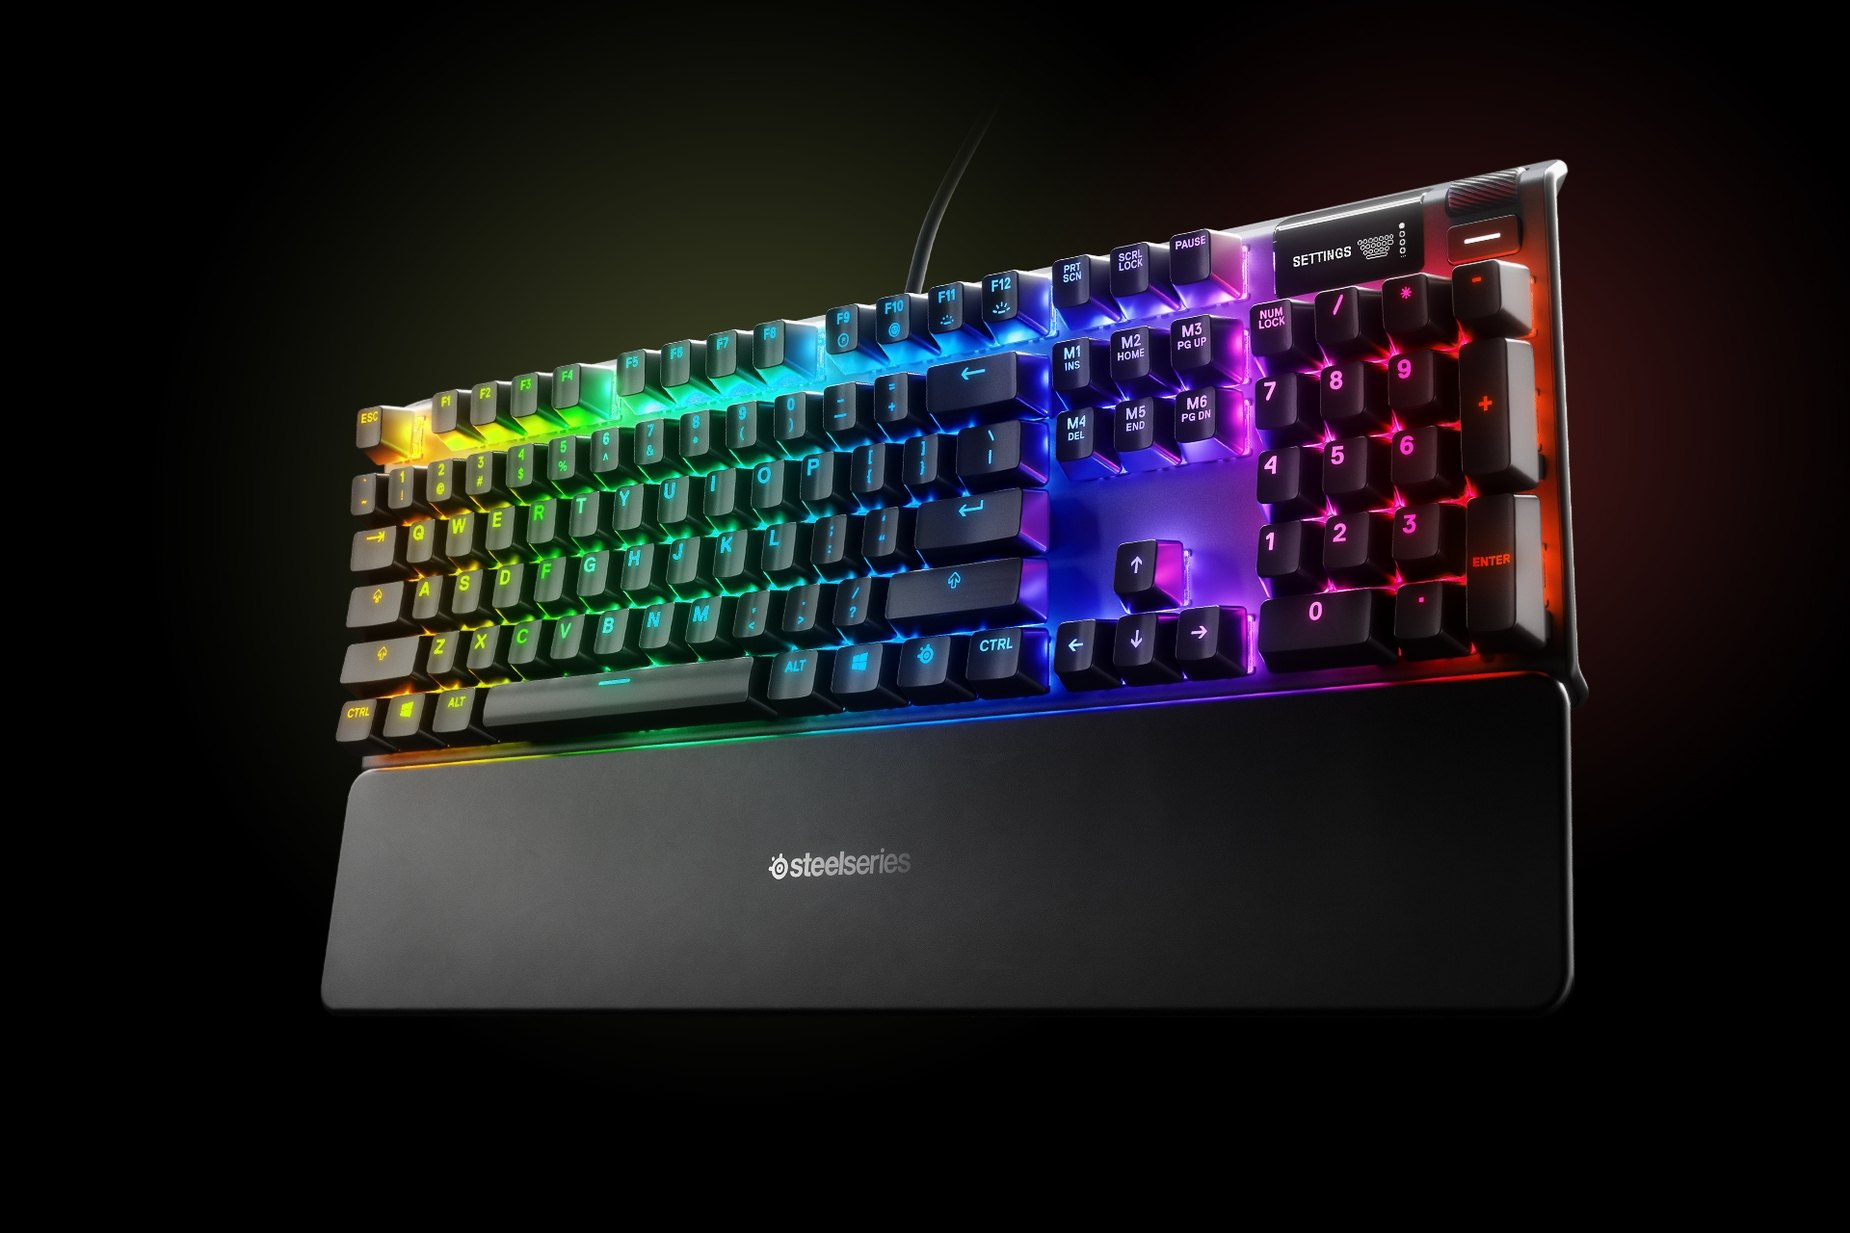 Korean-Apex 7 (Blue Switch) gaming keyboard with the illumination lit up on dark background, also shows the OLED screen and controls used to change settings and adjust audio